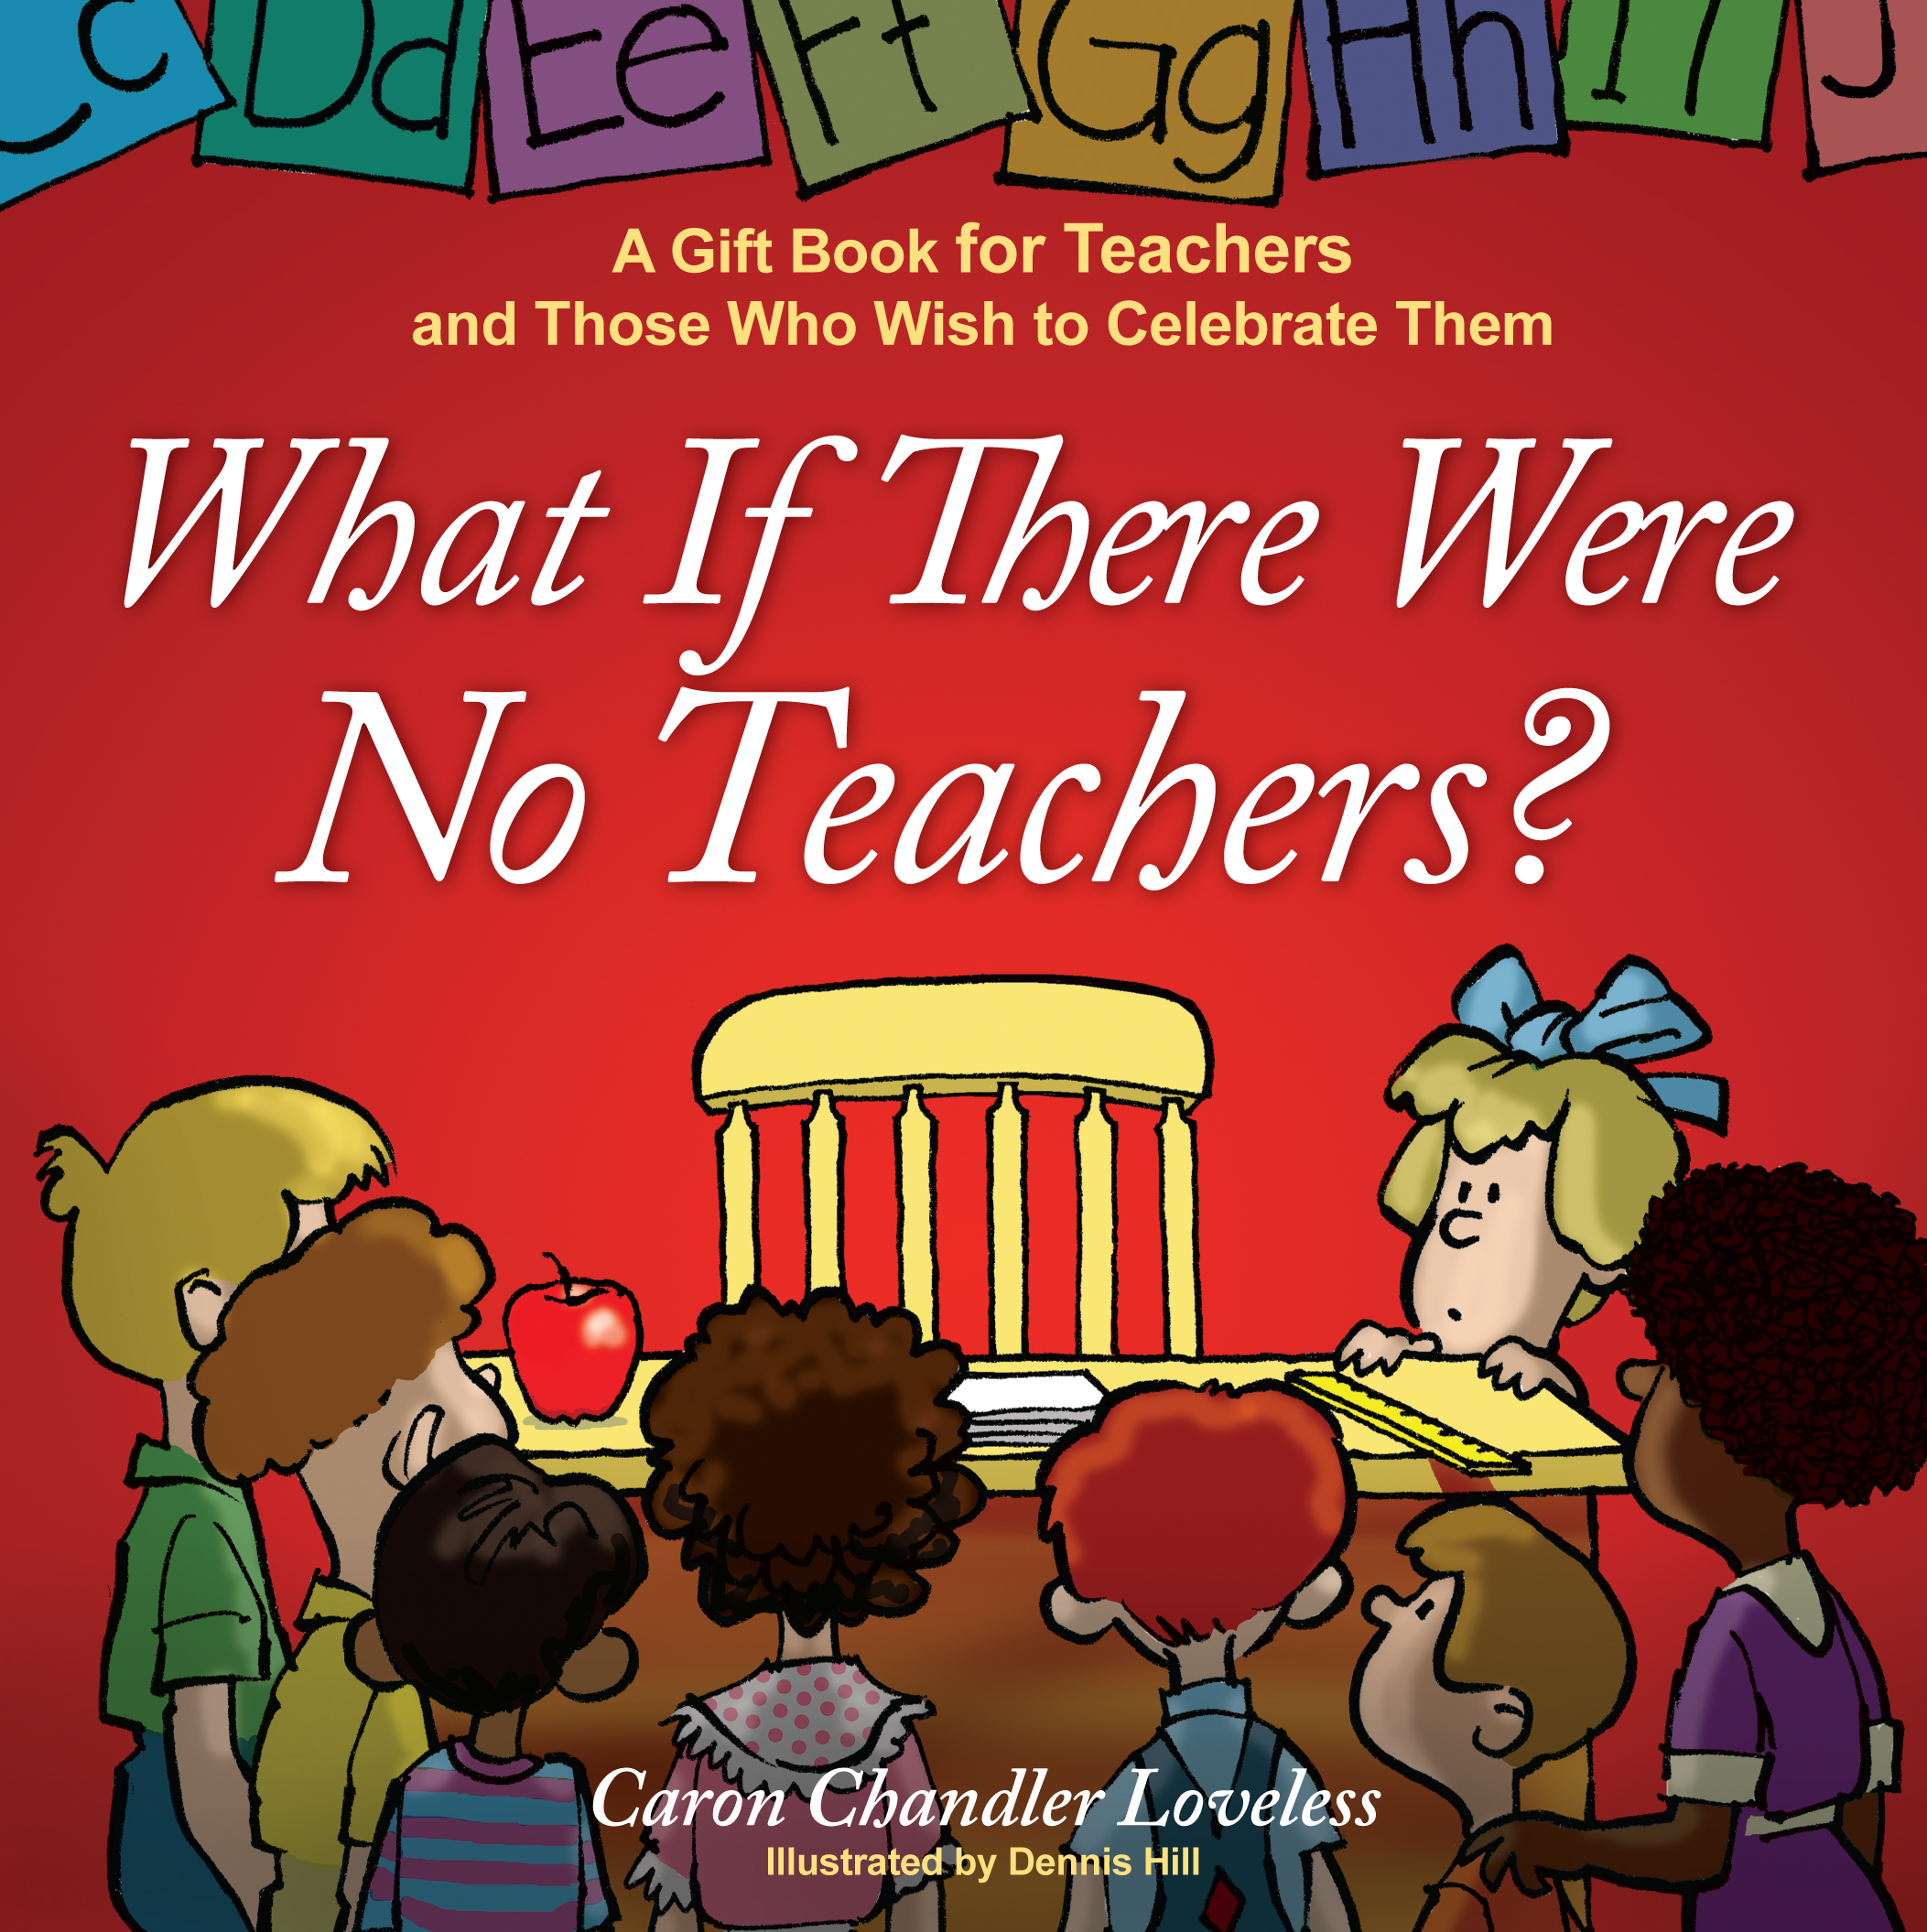 what if there were no teachers book by caron chandler loveless cvr9781416551973 9781416551973 hr what if there were